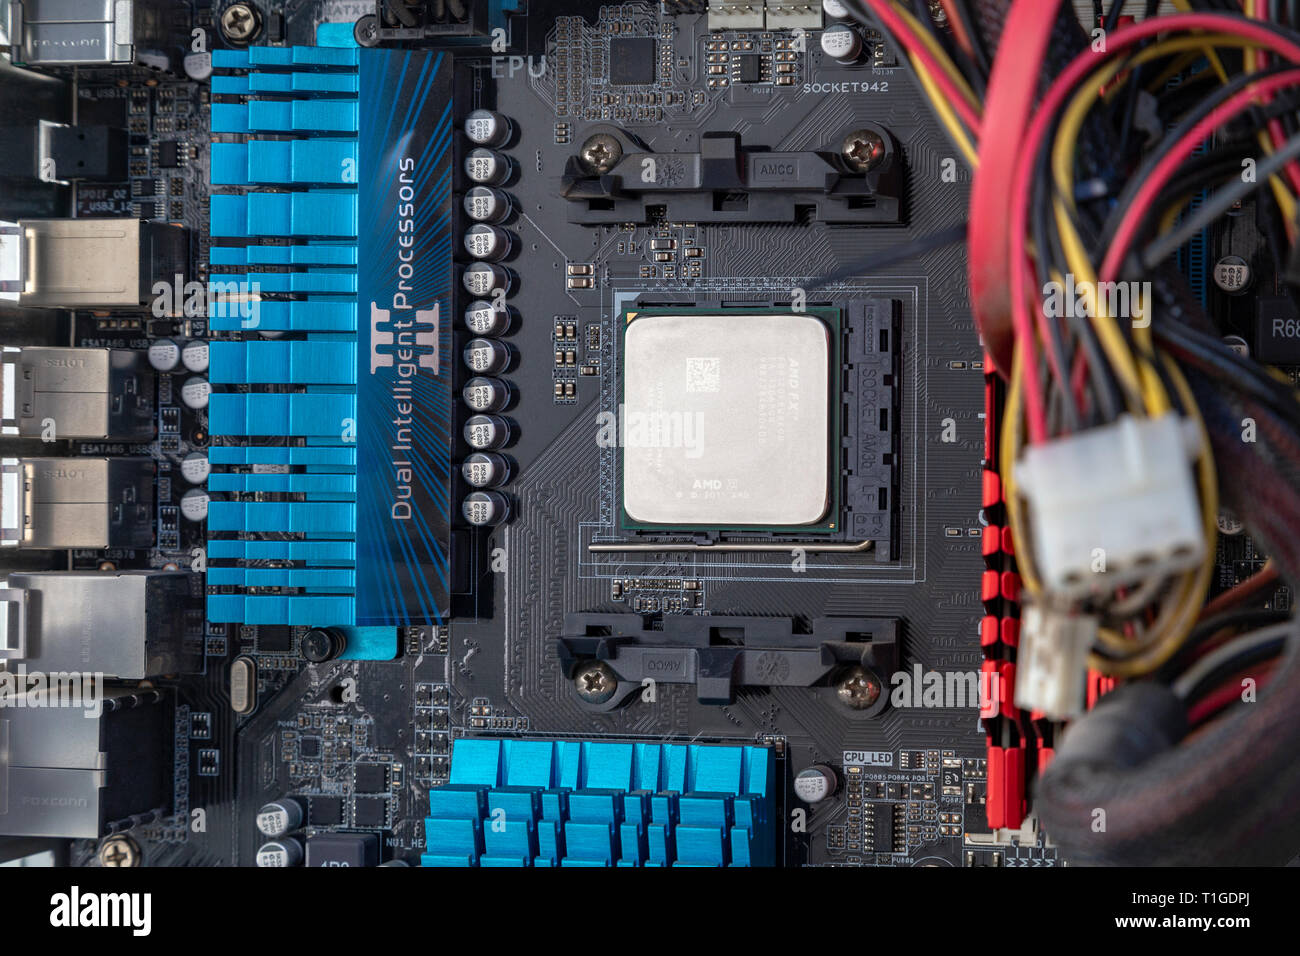 Asus Stock Photos & Asus Stock Images - Alamy